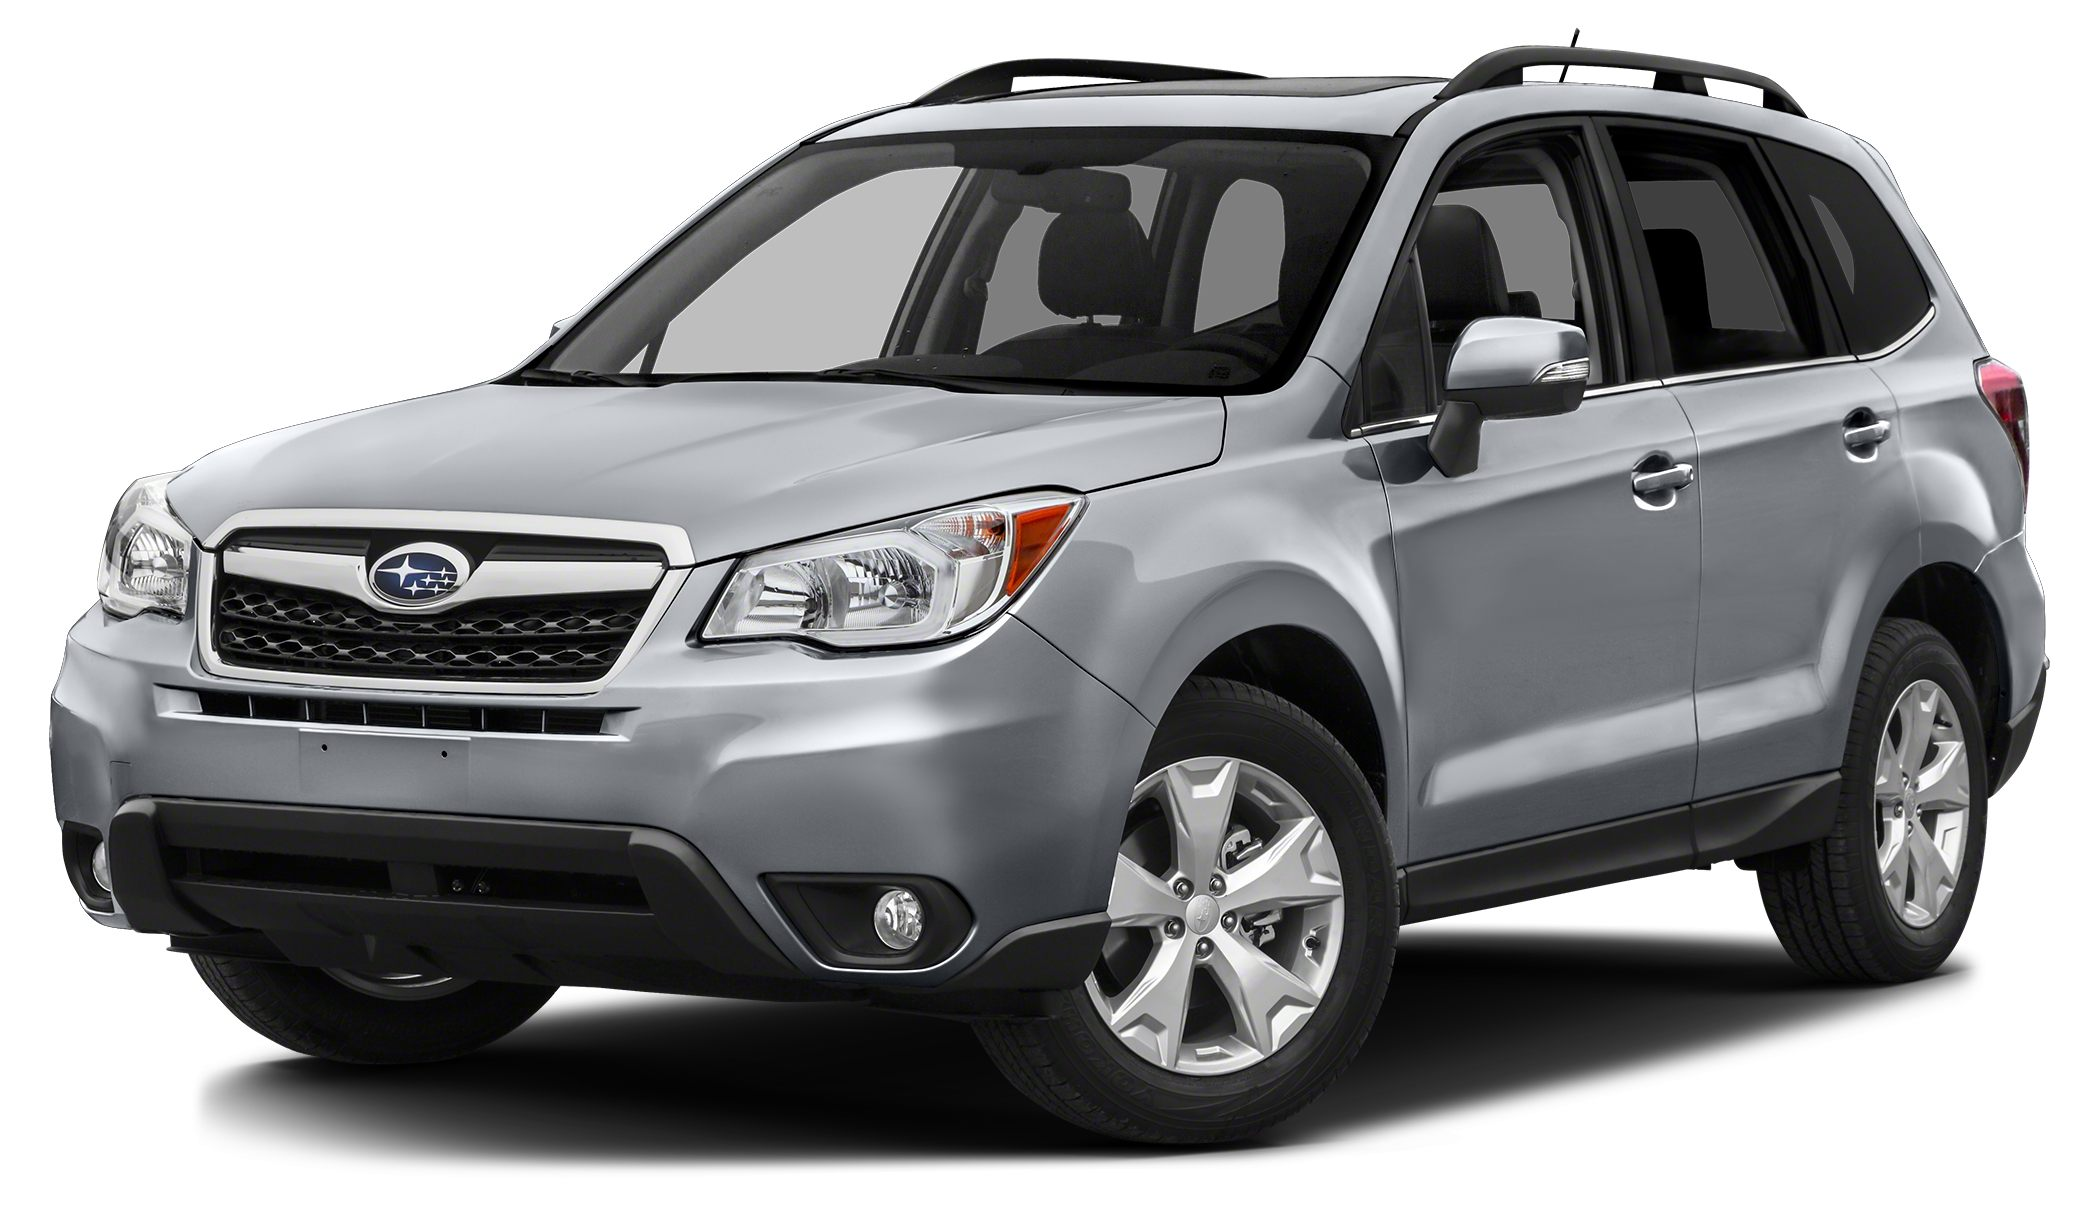 2014 Subaru Forester 25i Touring This unbelievably rare Subaru Forester 25i Touring is a perfect